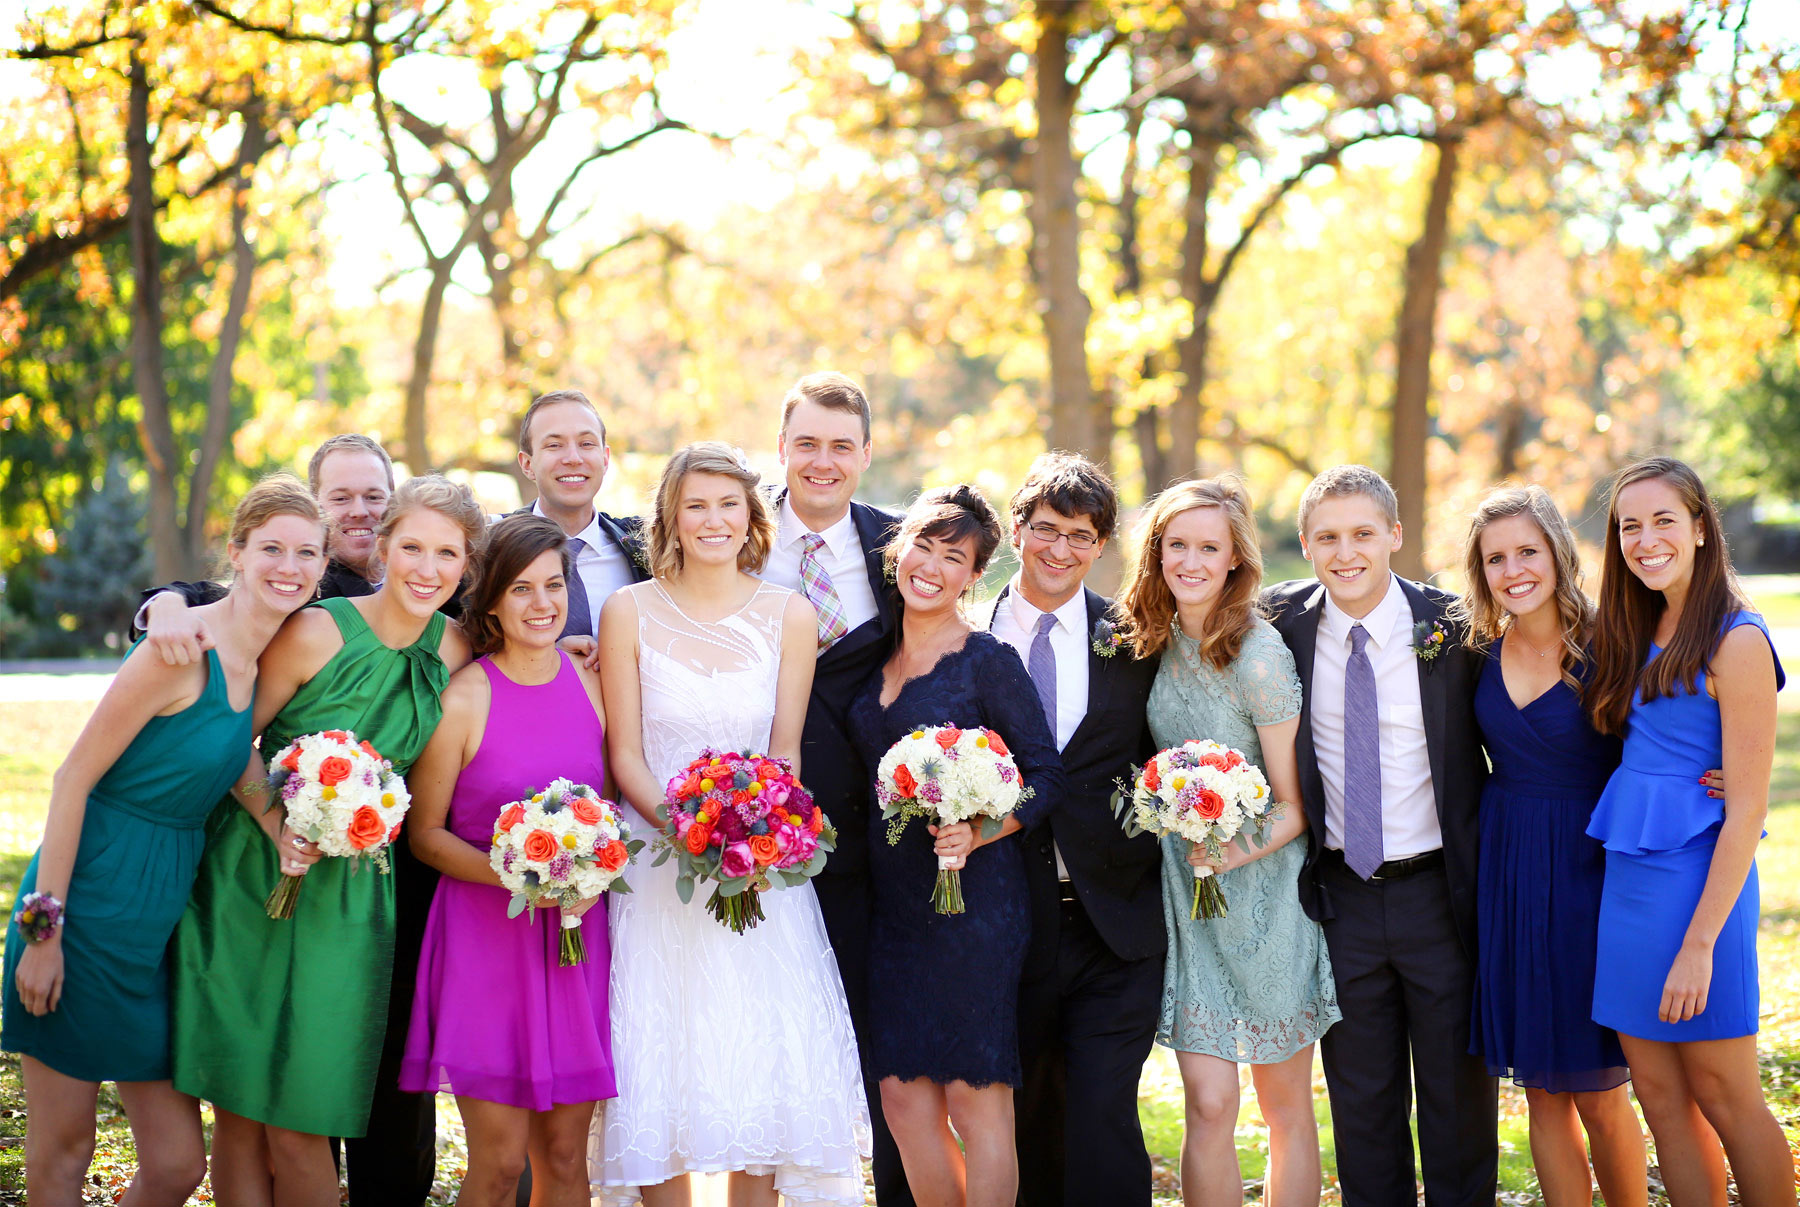 07-Minneapolis-Minnesota-Wedding-Photography-by-Vick-Photography-Fall-Colors-Autumn-Leaves-Wedding-Party-Group-Madeline-&-Matt.jpg